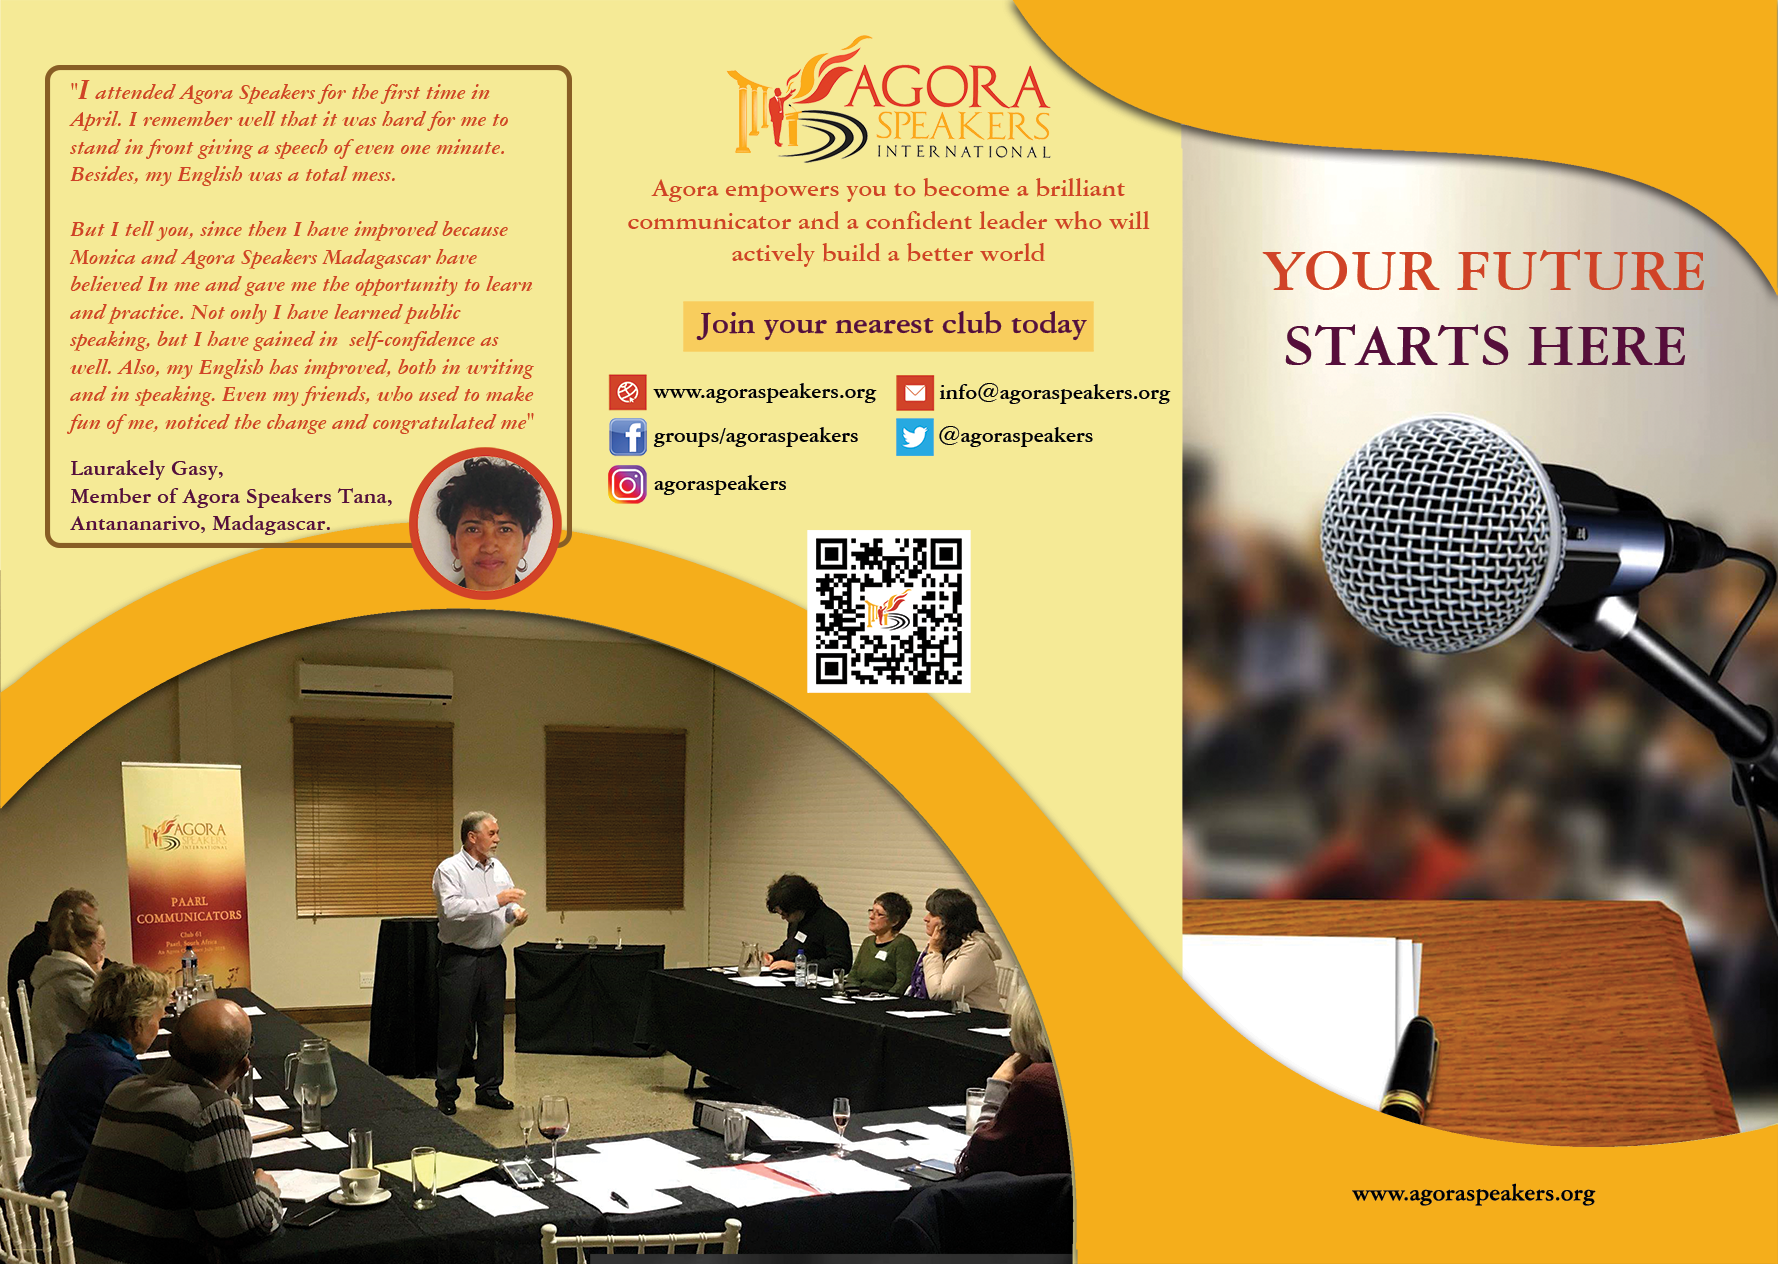 agora speakers international